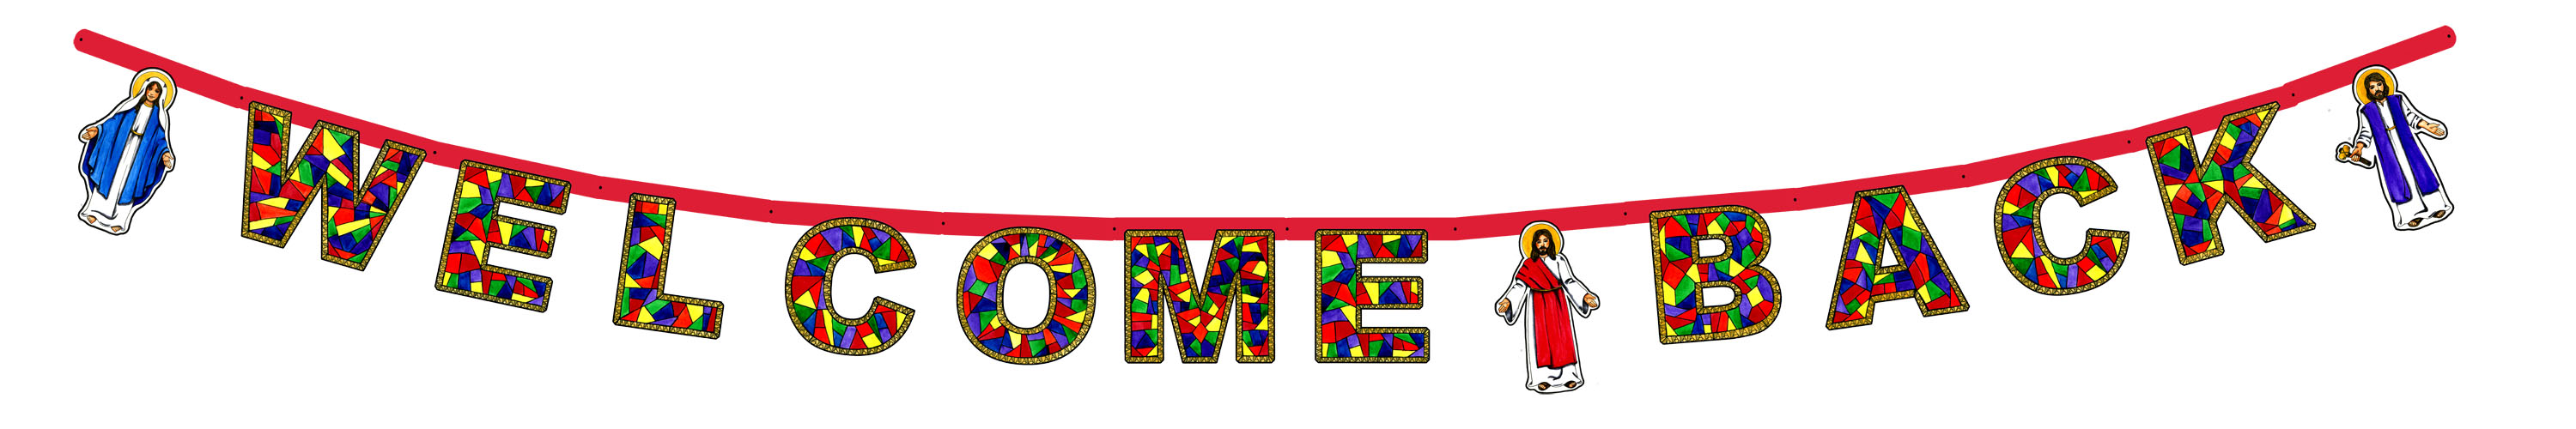 Welcome Home Road Sign Clipart.